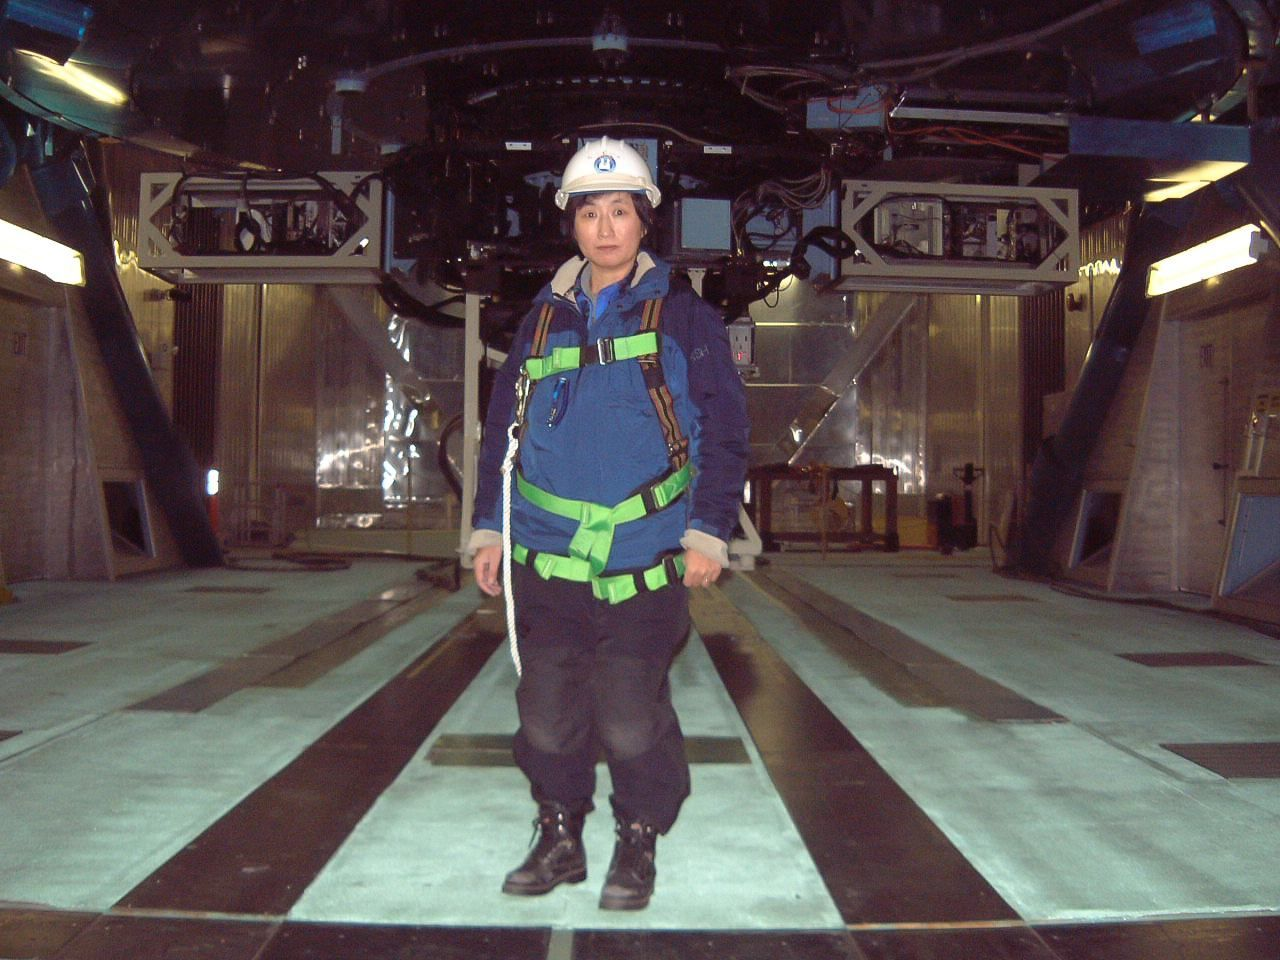 Hayashi Saeko in 2002, photographed in front of the Subaru Telescope. She is wearing a safety harness necessary to operate an aerial lift for the direct inspection of the primary mirror. (Photo courtesy of Hayashi Saeko)